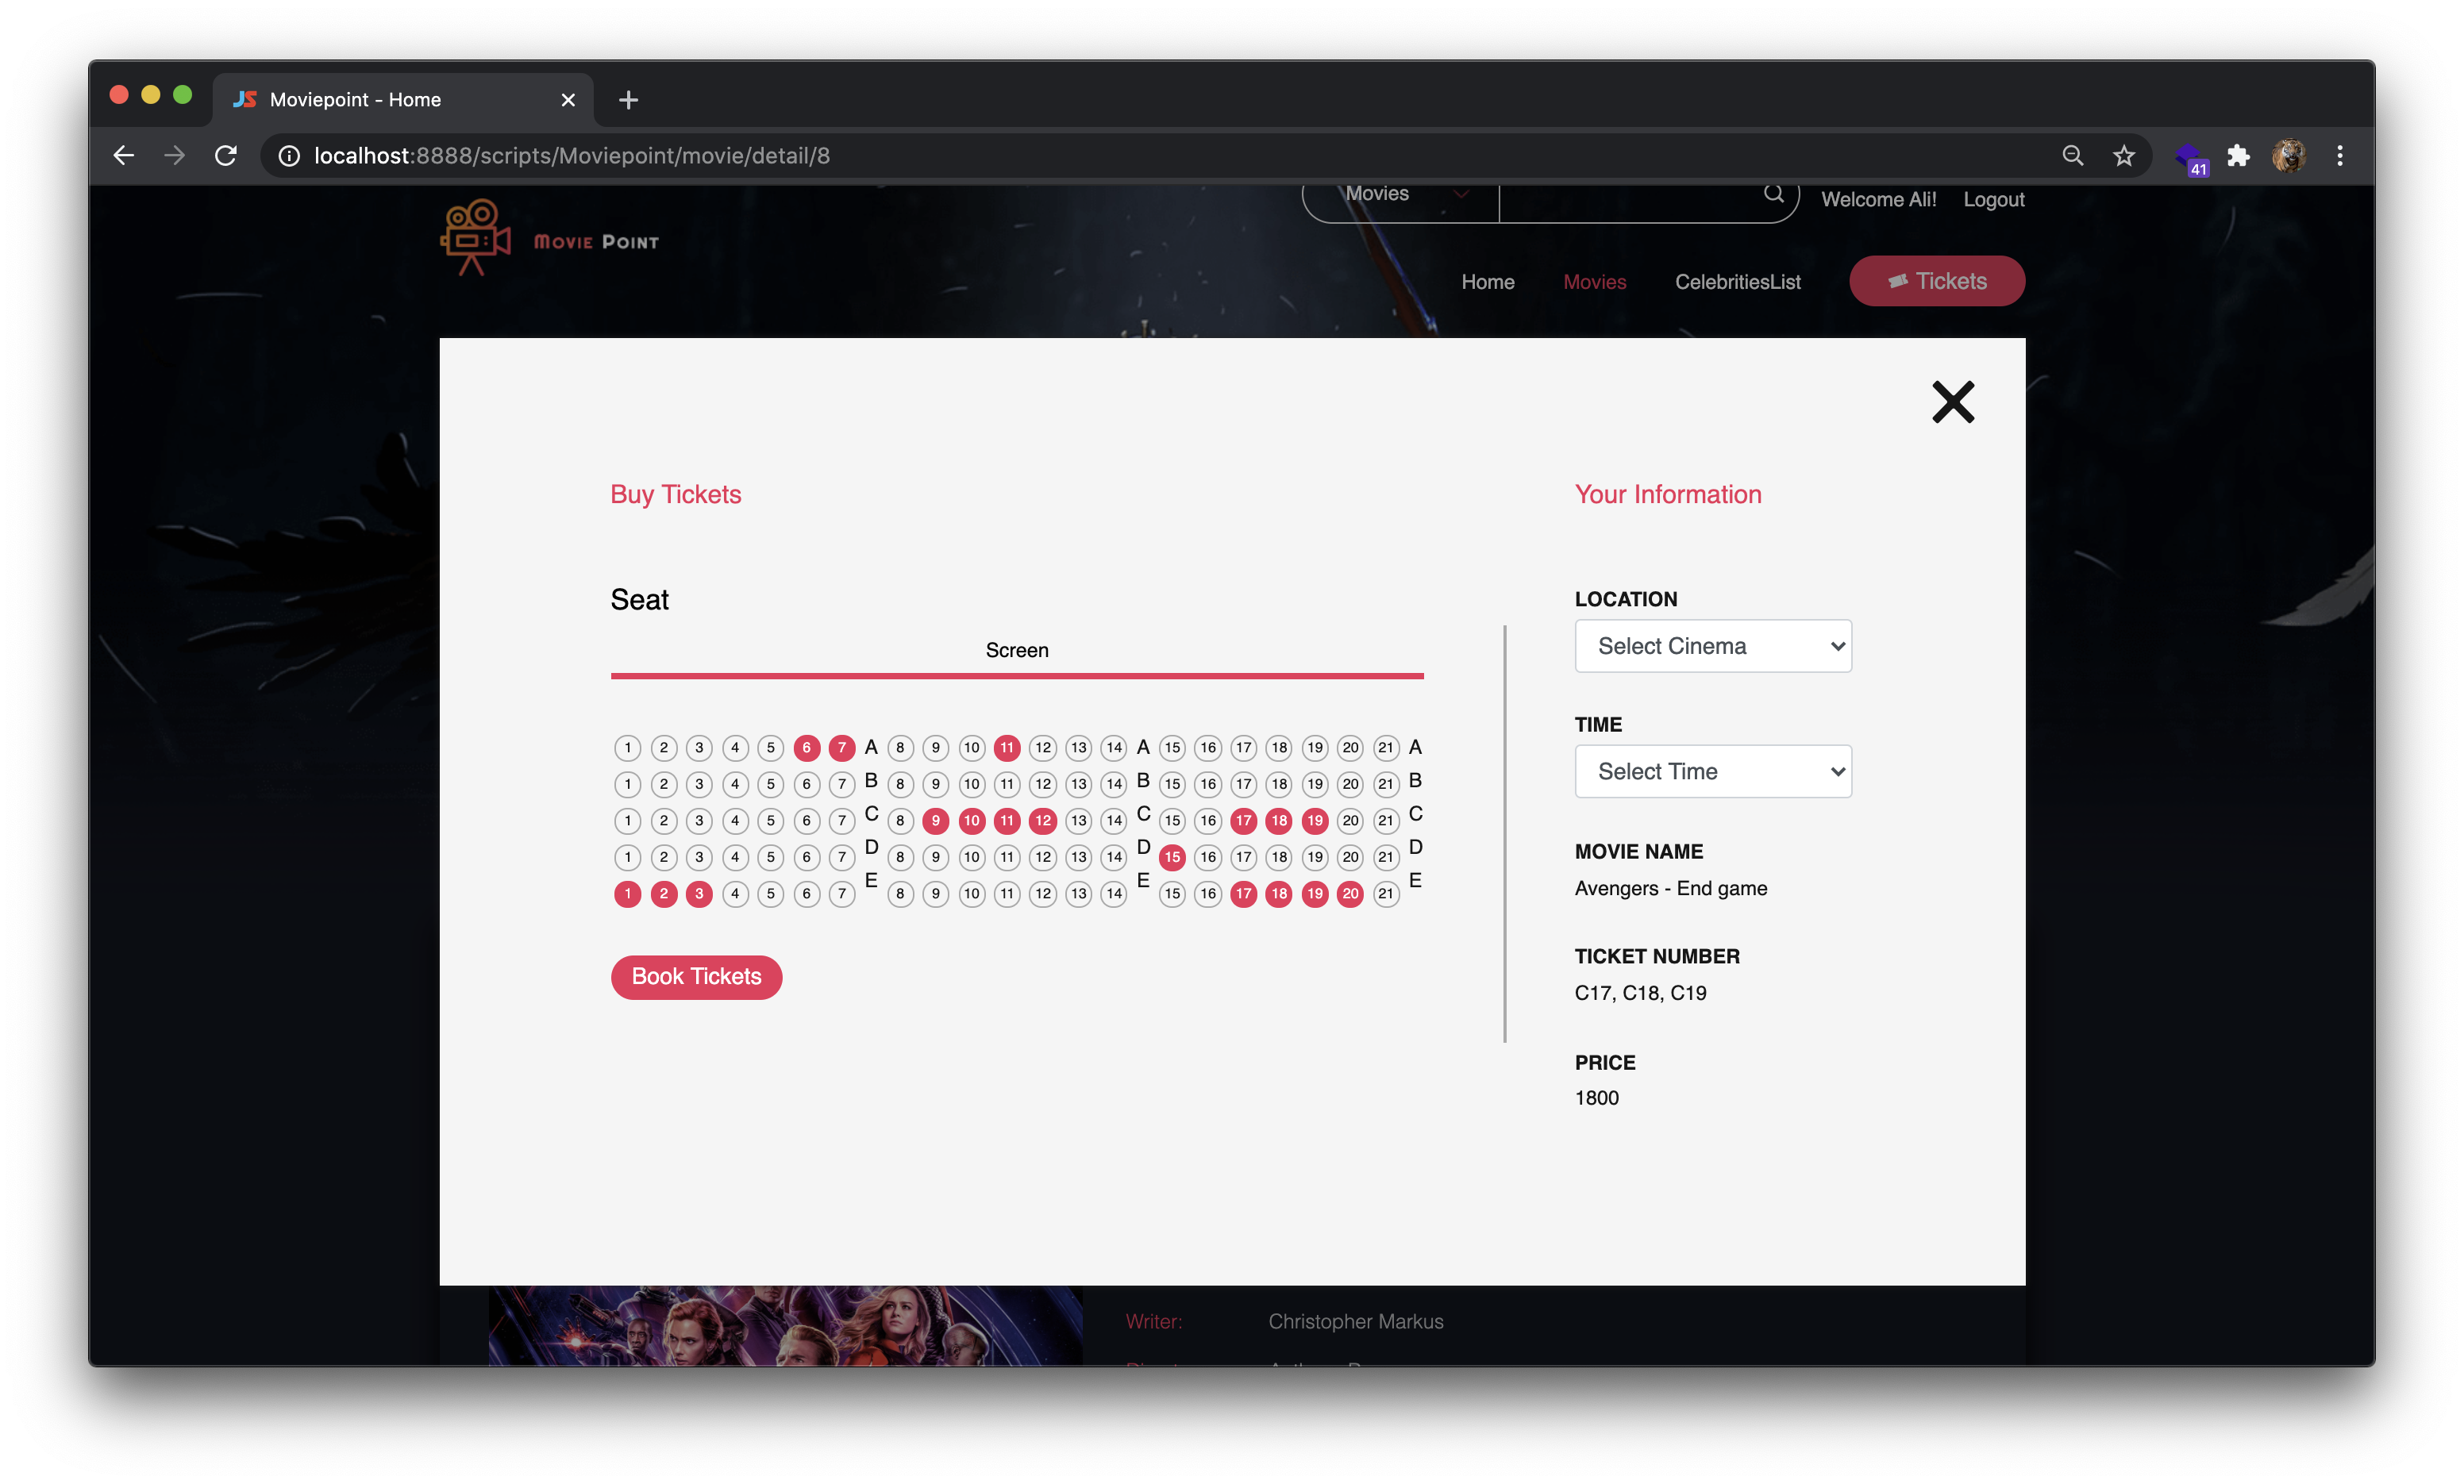 Screenshot-Movie-Ticket-Buchung-Website-PHP-MySQL